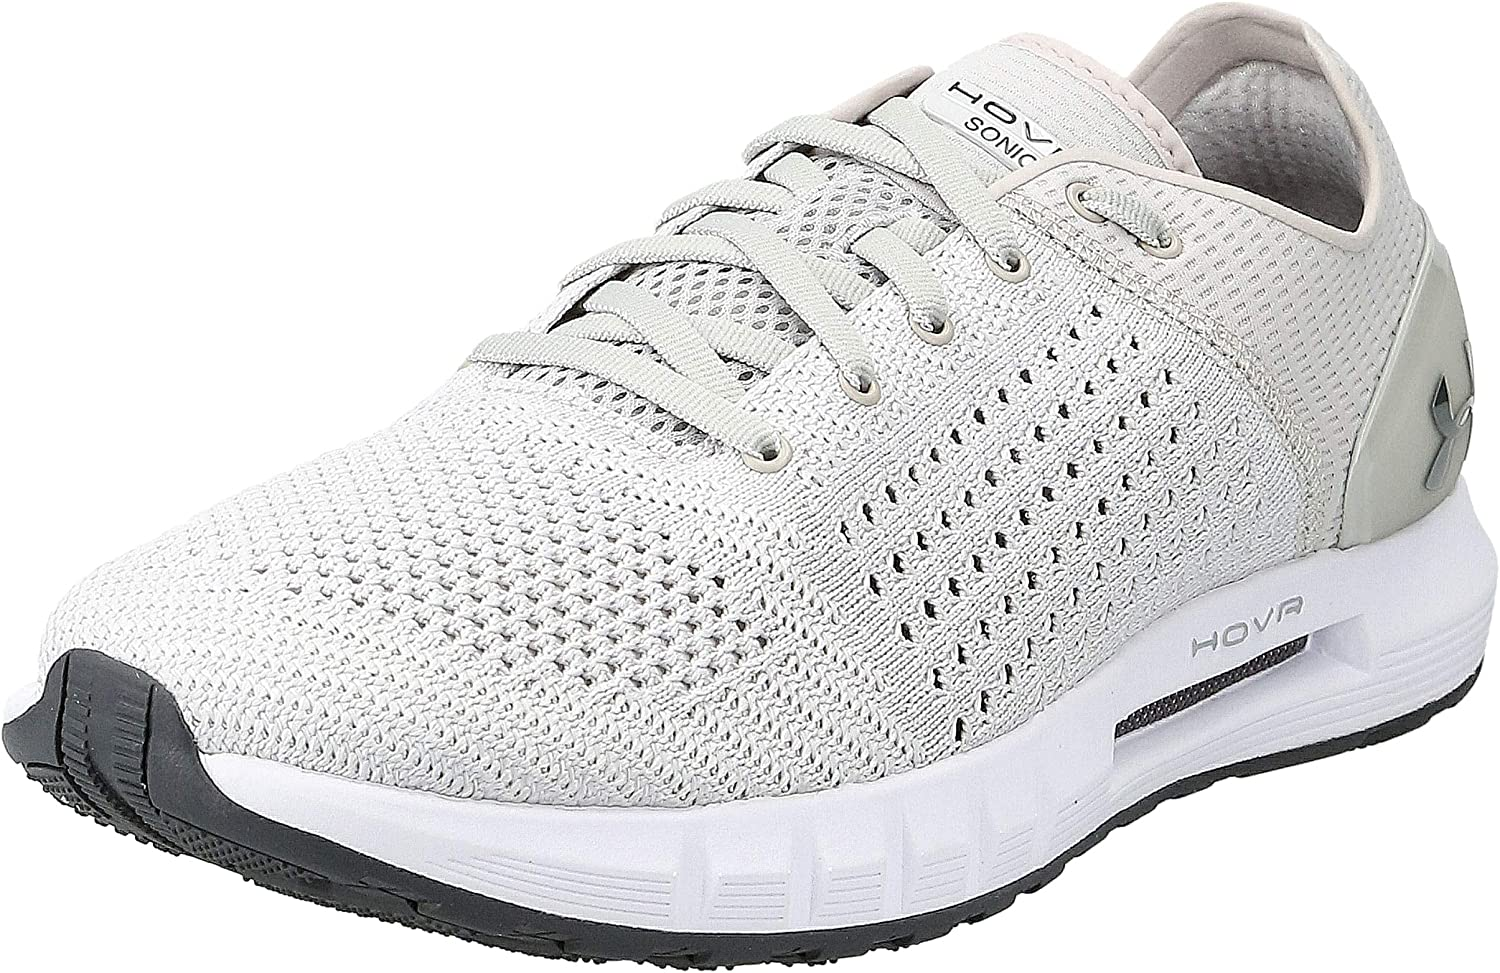 Under Armour Outlet SALE Men's Award-winning store HOVR Running Shoe Sonic